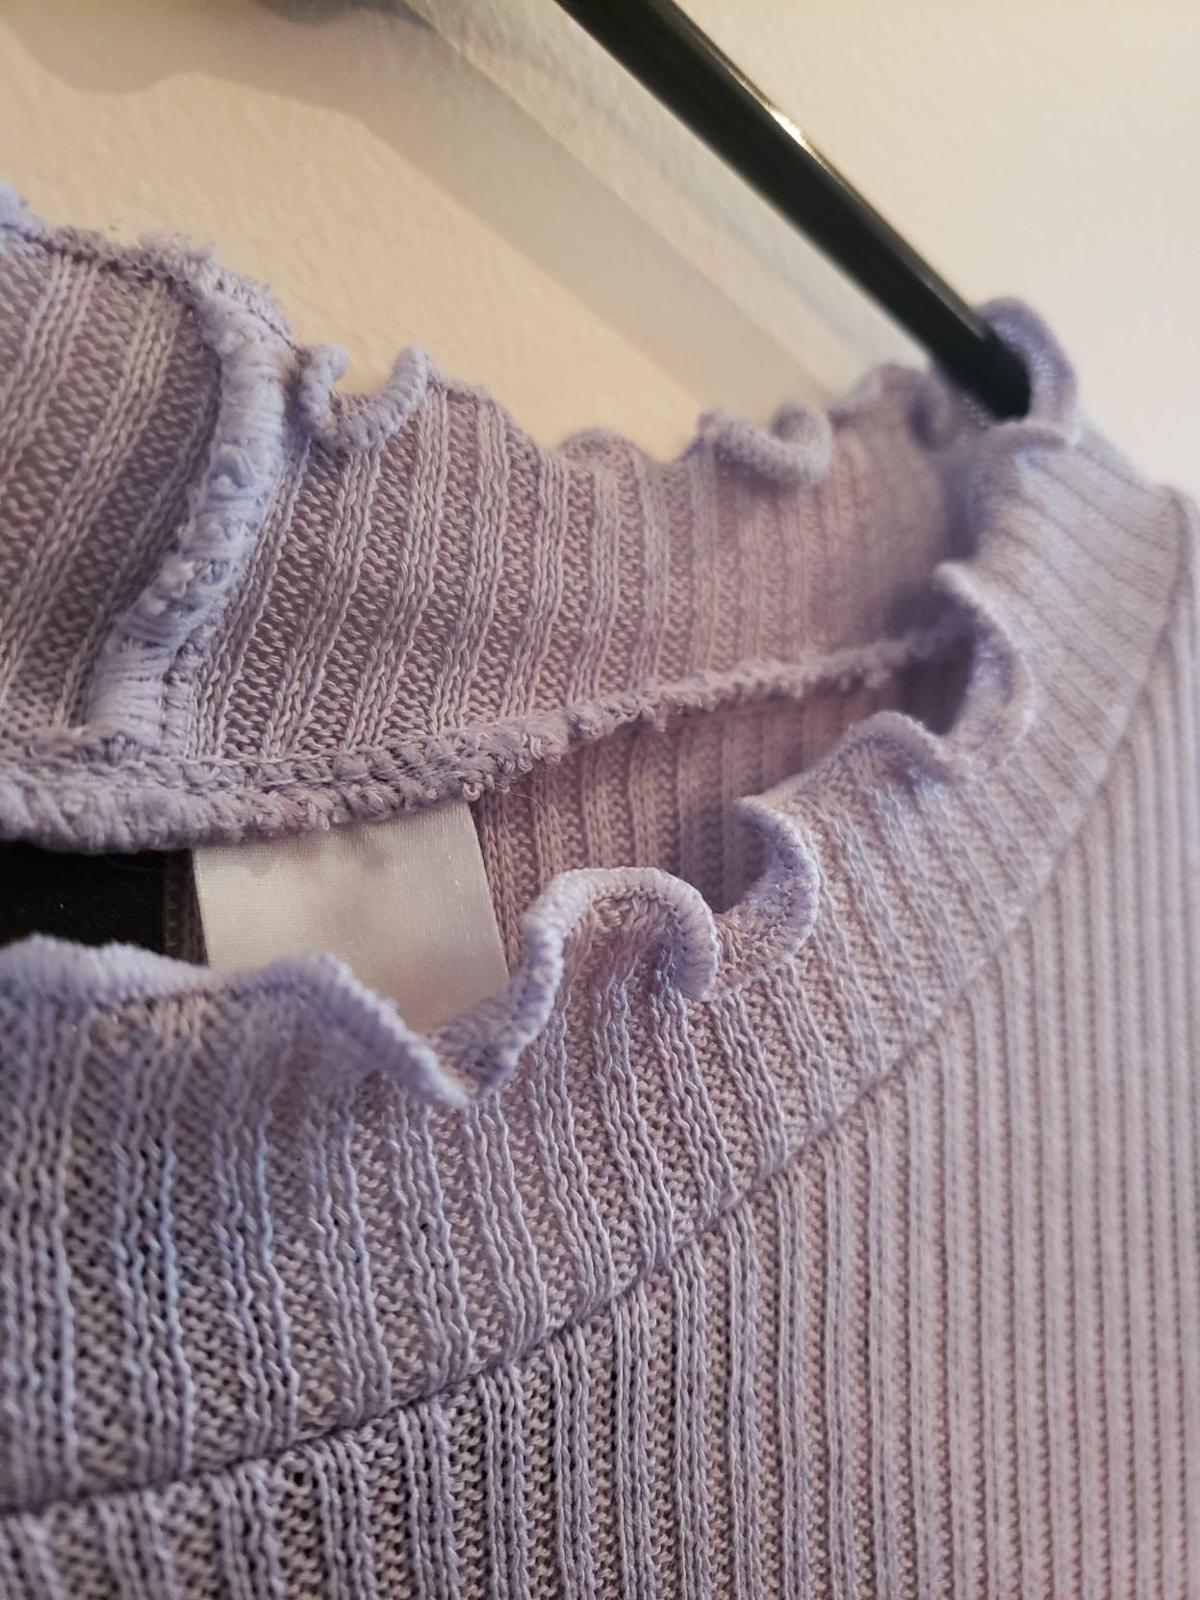 A long-sleeved top with a lettuce edge hem hangs on a hanger